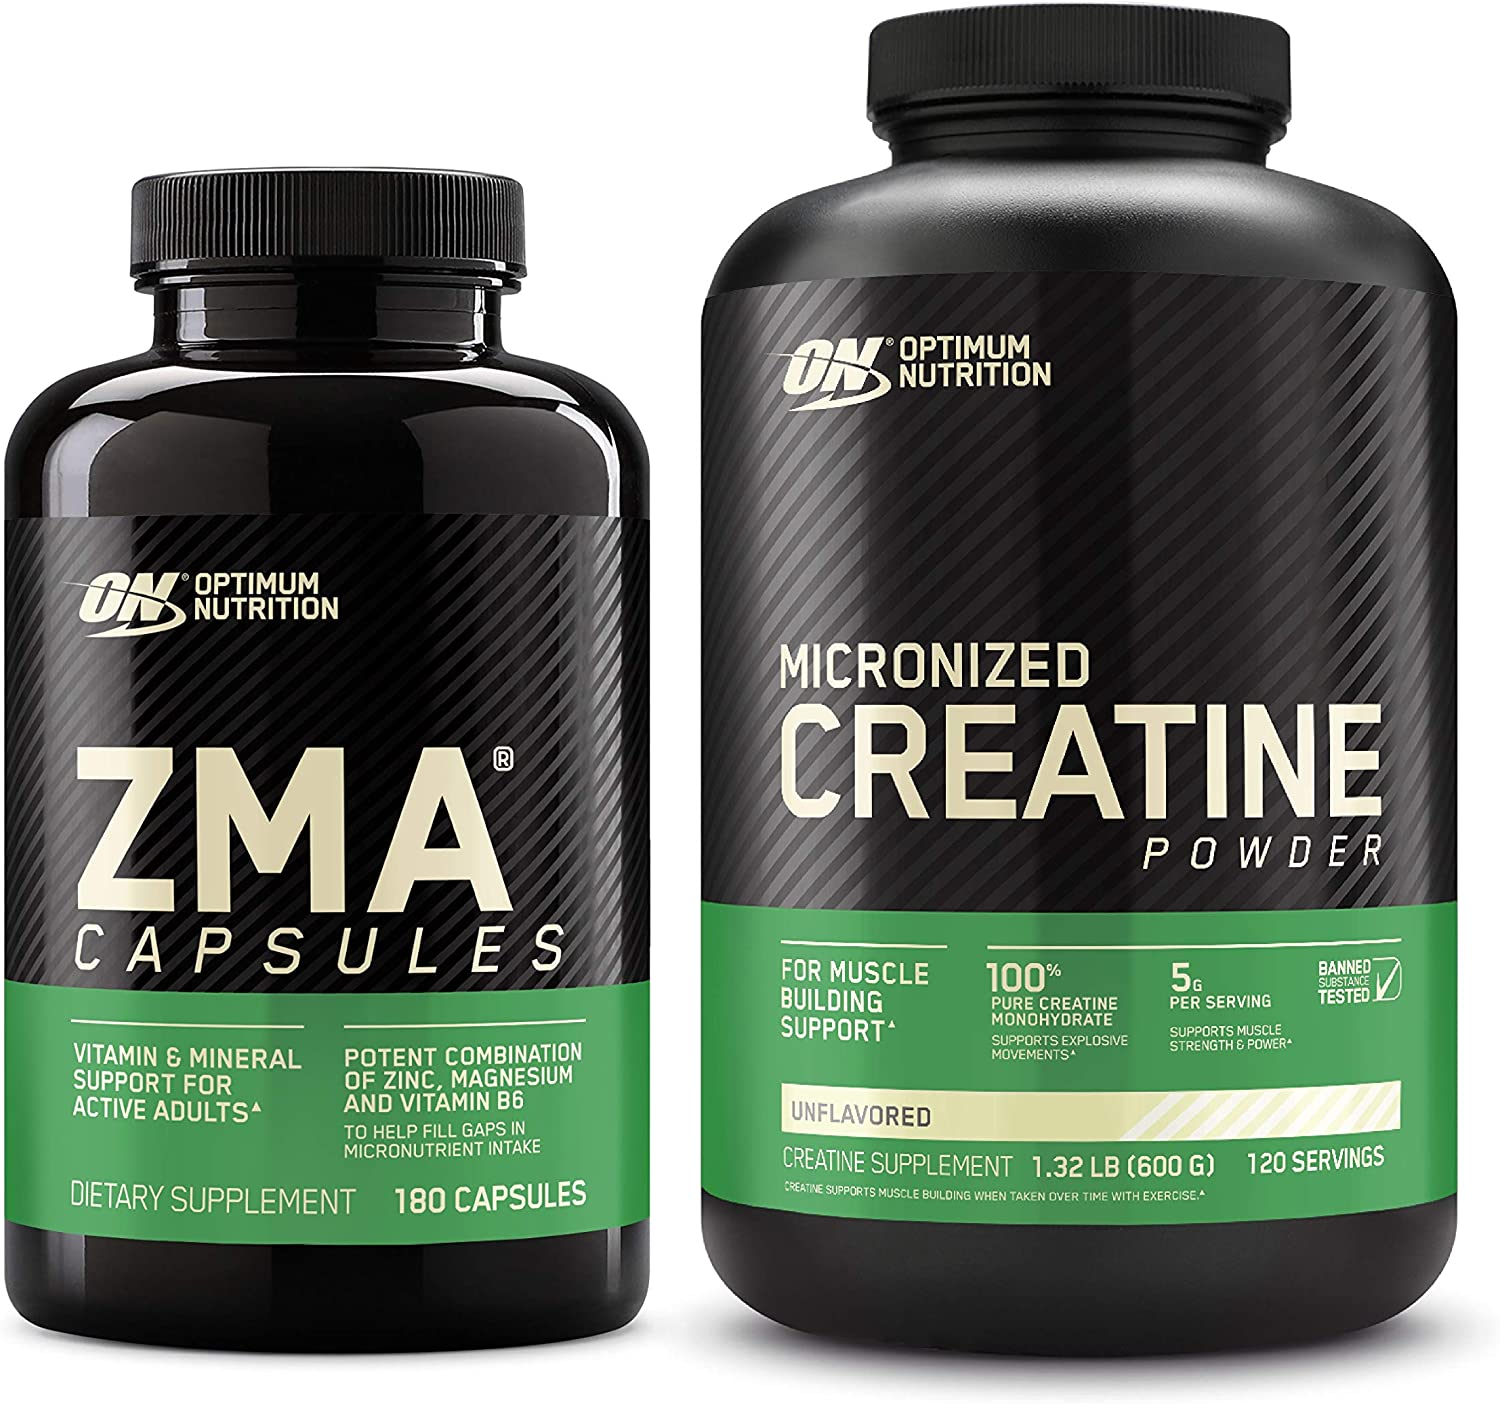 Optimum Nutrition ZMA Muscle Recovery and Endurance Supplement for Men and Women, Zinc and Magnesium Supplement with Micronized Creatine Monohydrate Powder, Unflavored